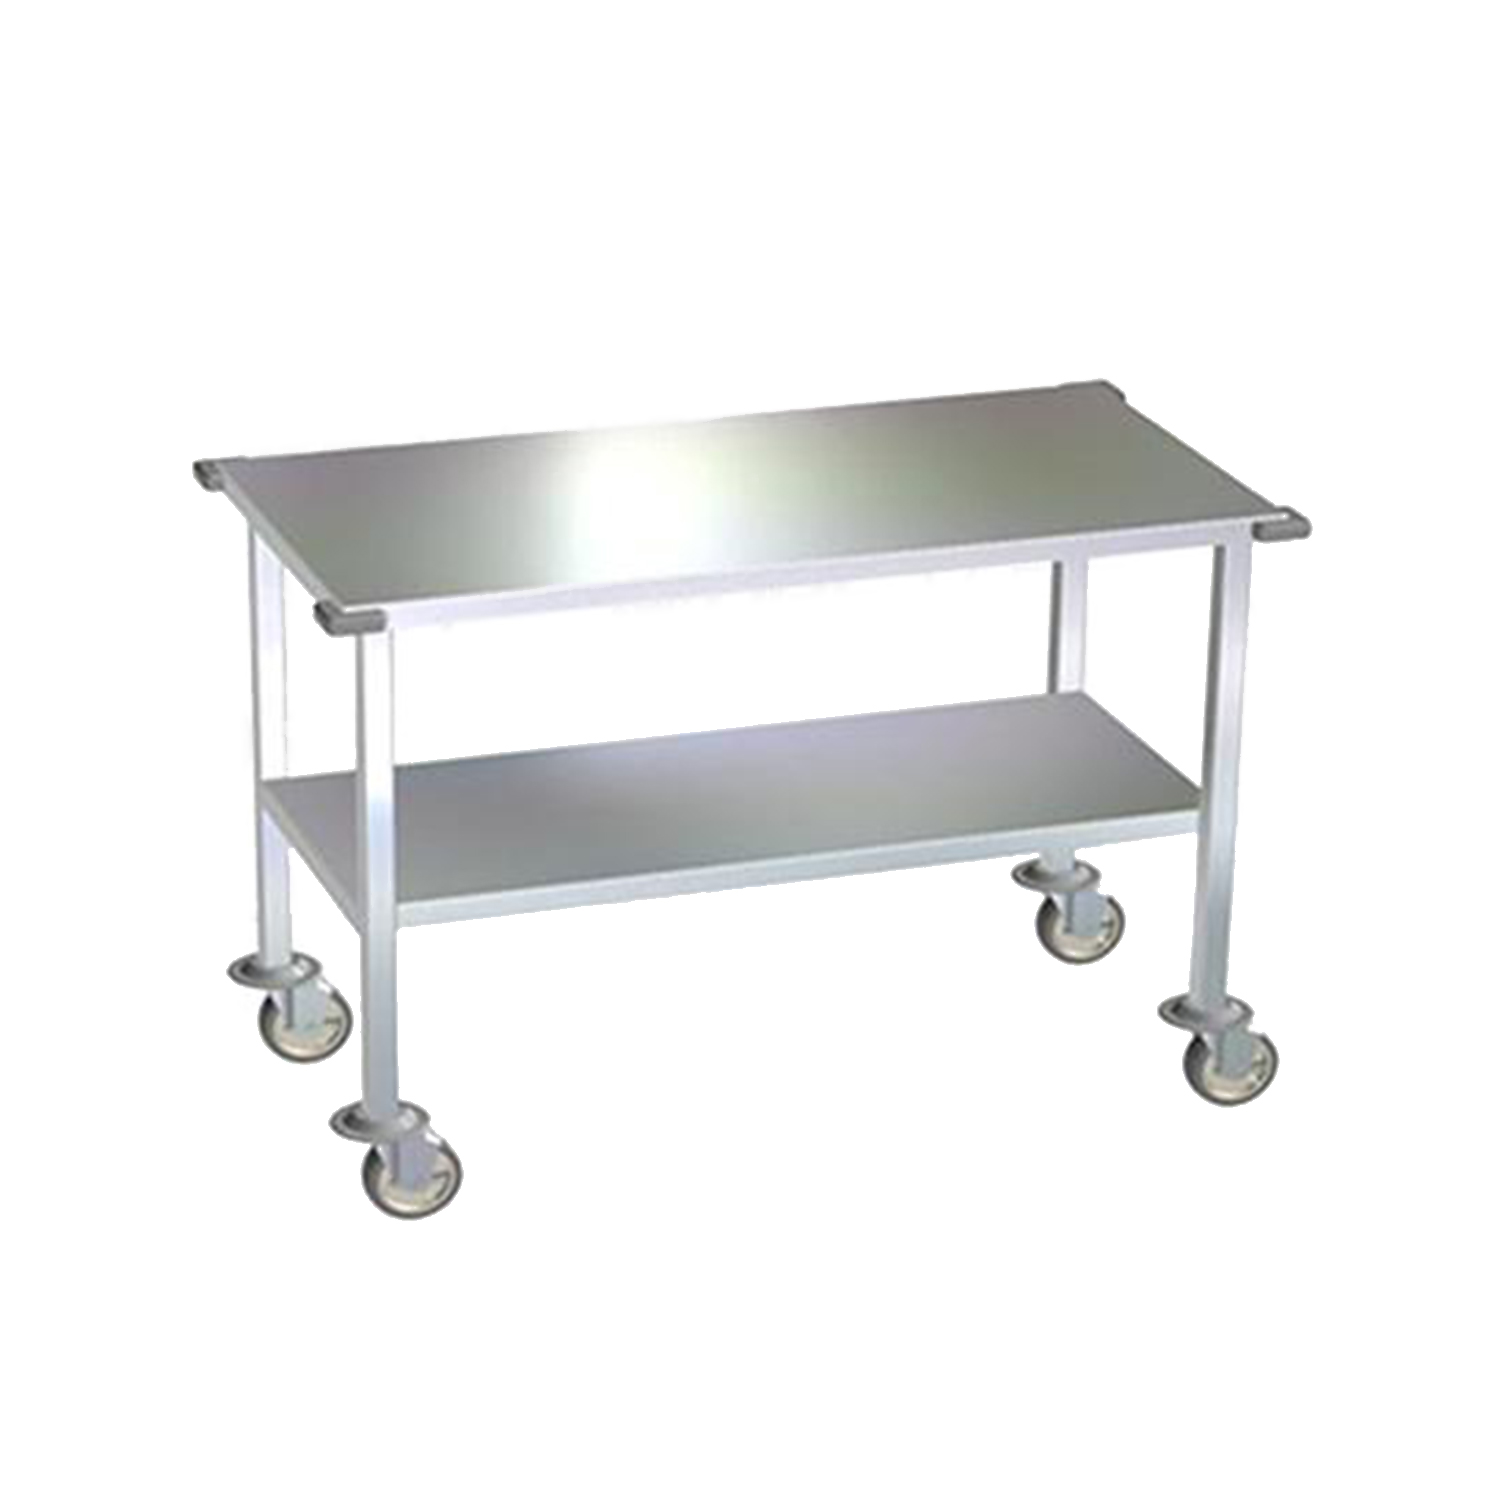 Avante Stainless Steel Mobile Gurney and Supply Transport Table